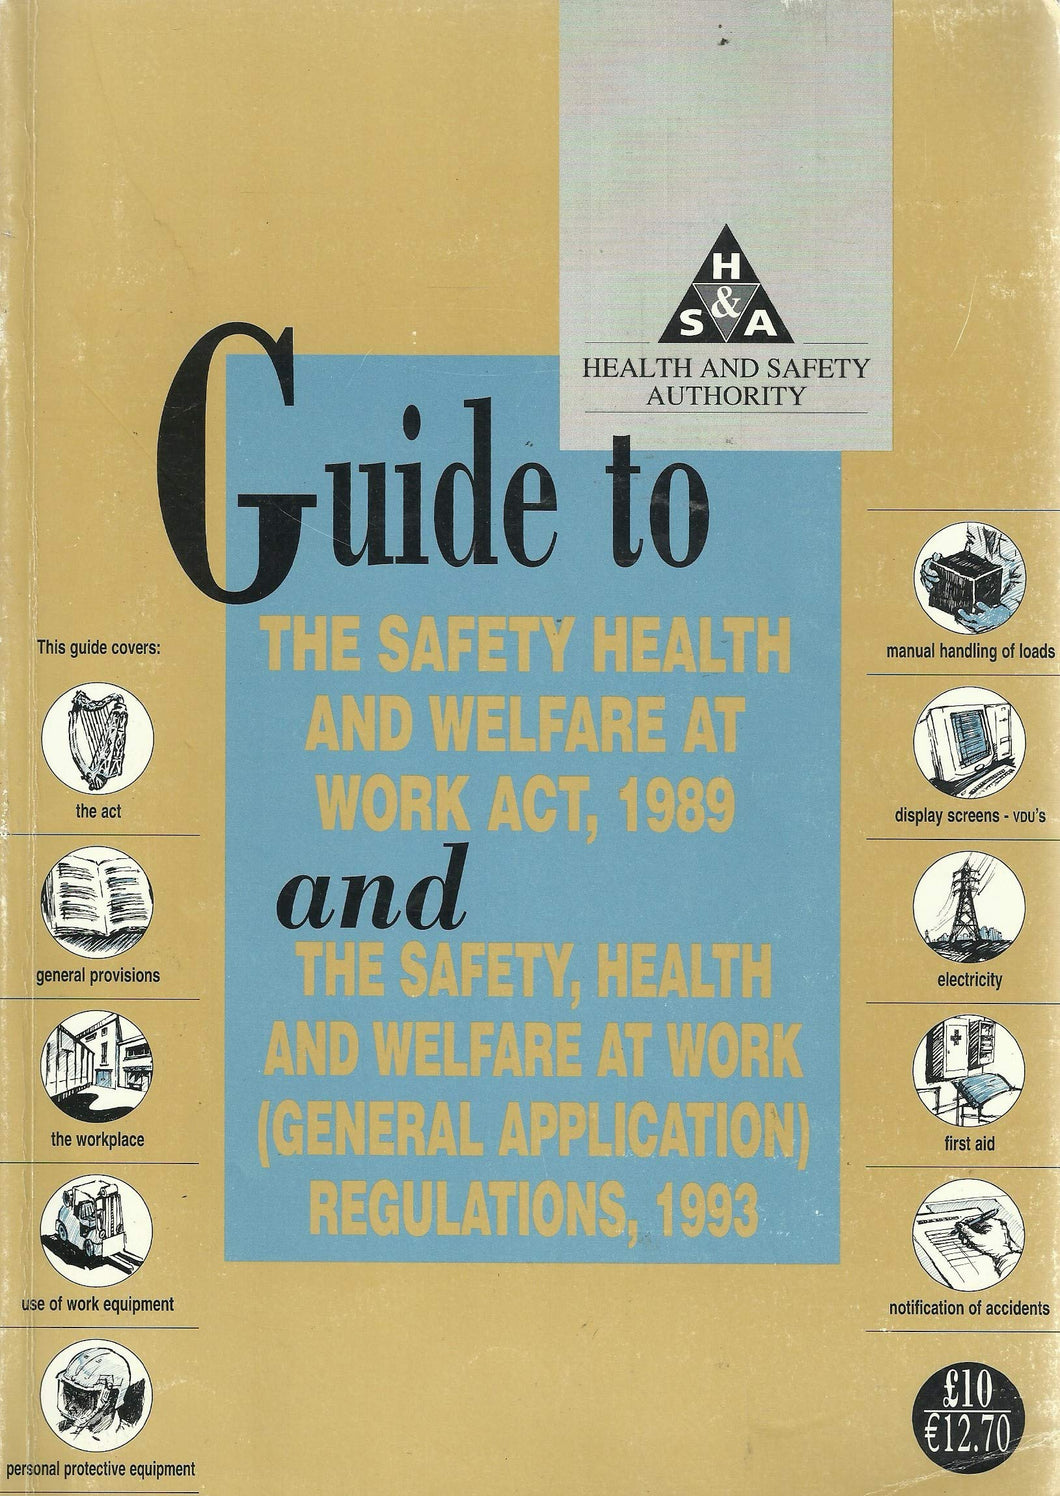 Guide to the Safety Health and Welfare at Work Act, 1989 and the Safety, Health and Welfare at Work (General Application) Regulations, 1993